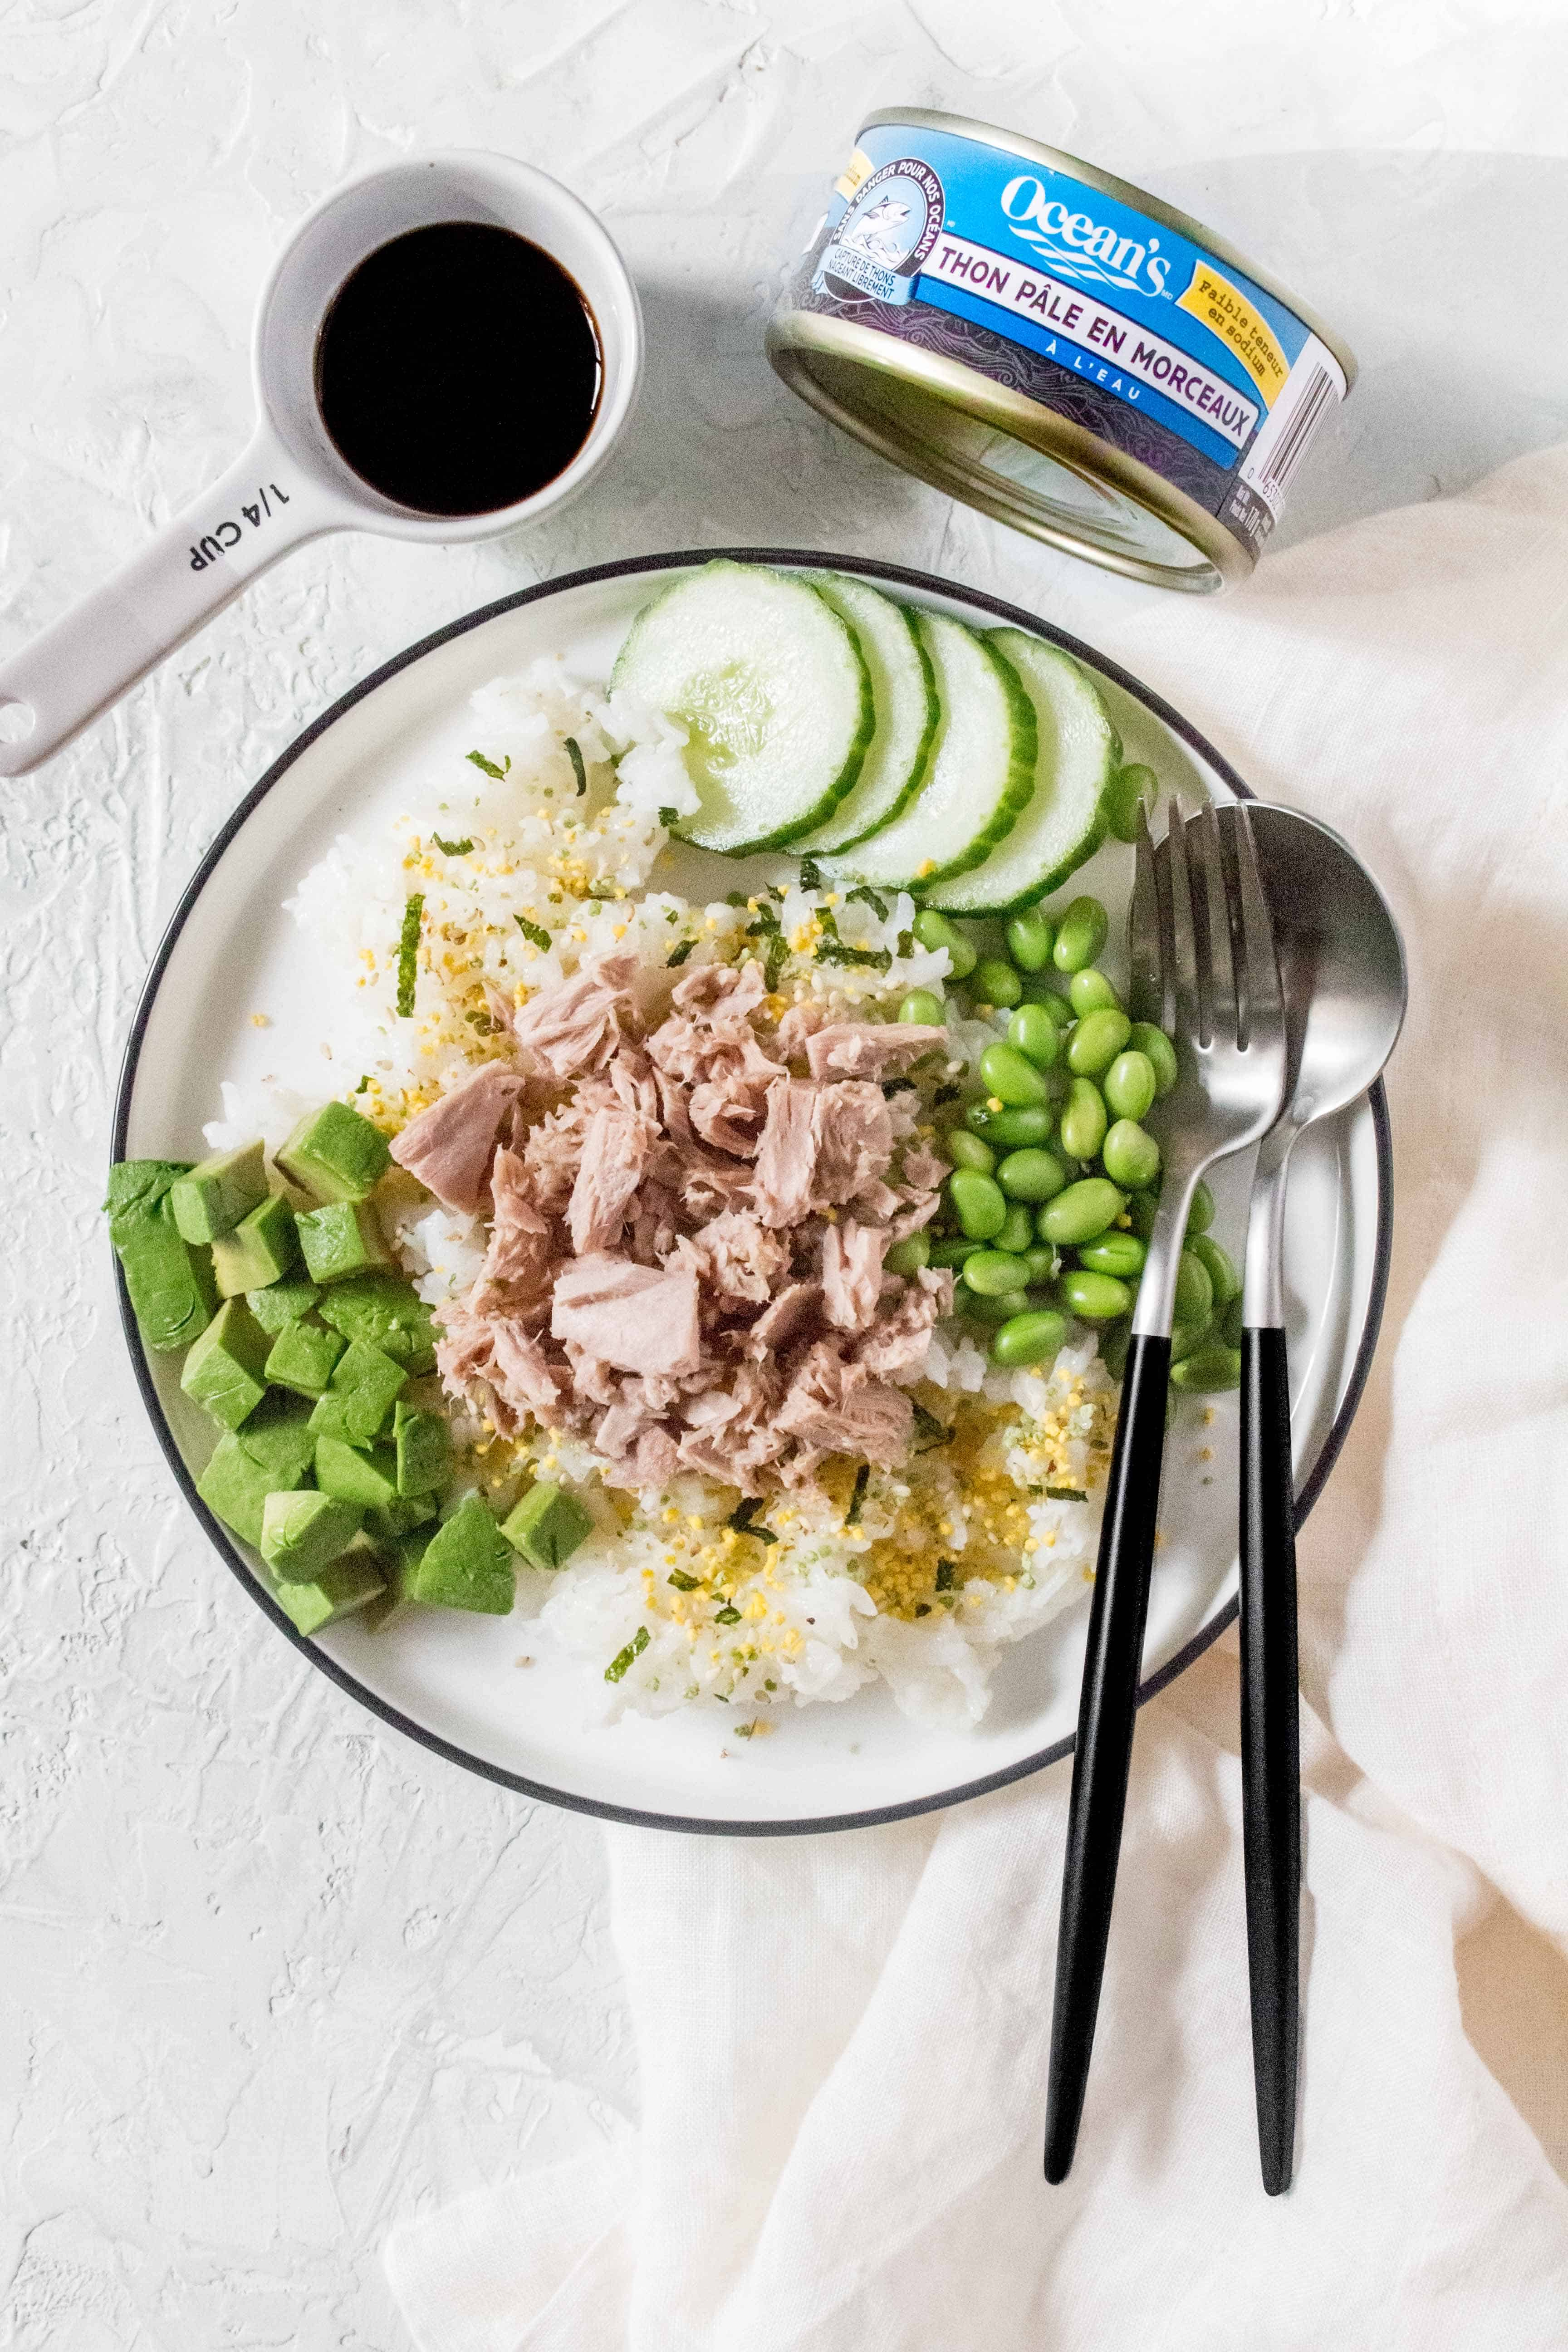 If you're looking for a healthy, easy, and budget friendly sushi inspired meal, I've got you covered! This healthy homemade Tuna Sushi Bowl is made with canned tuna and the most cooking you'll do is the rice!